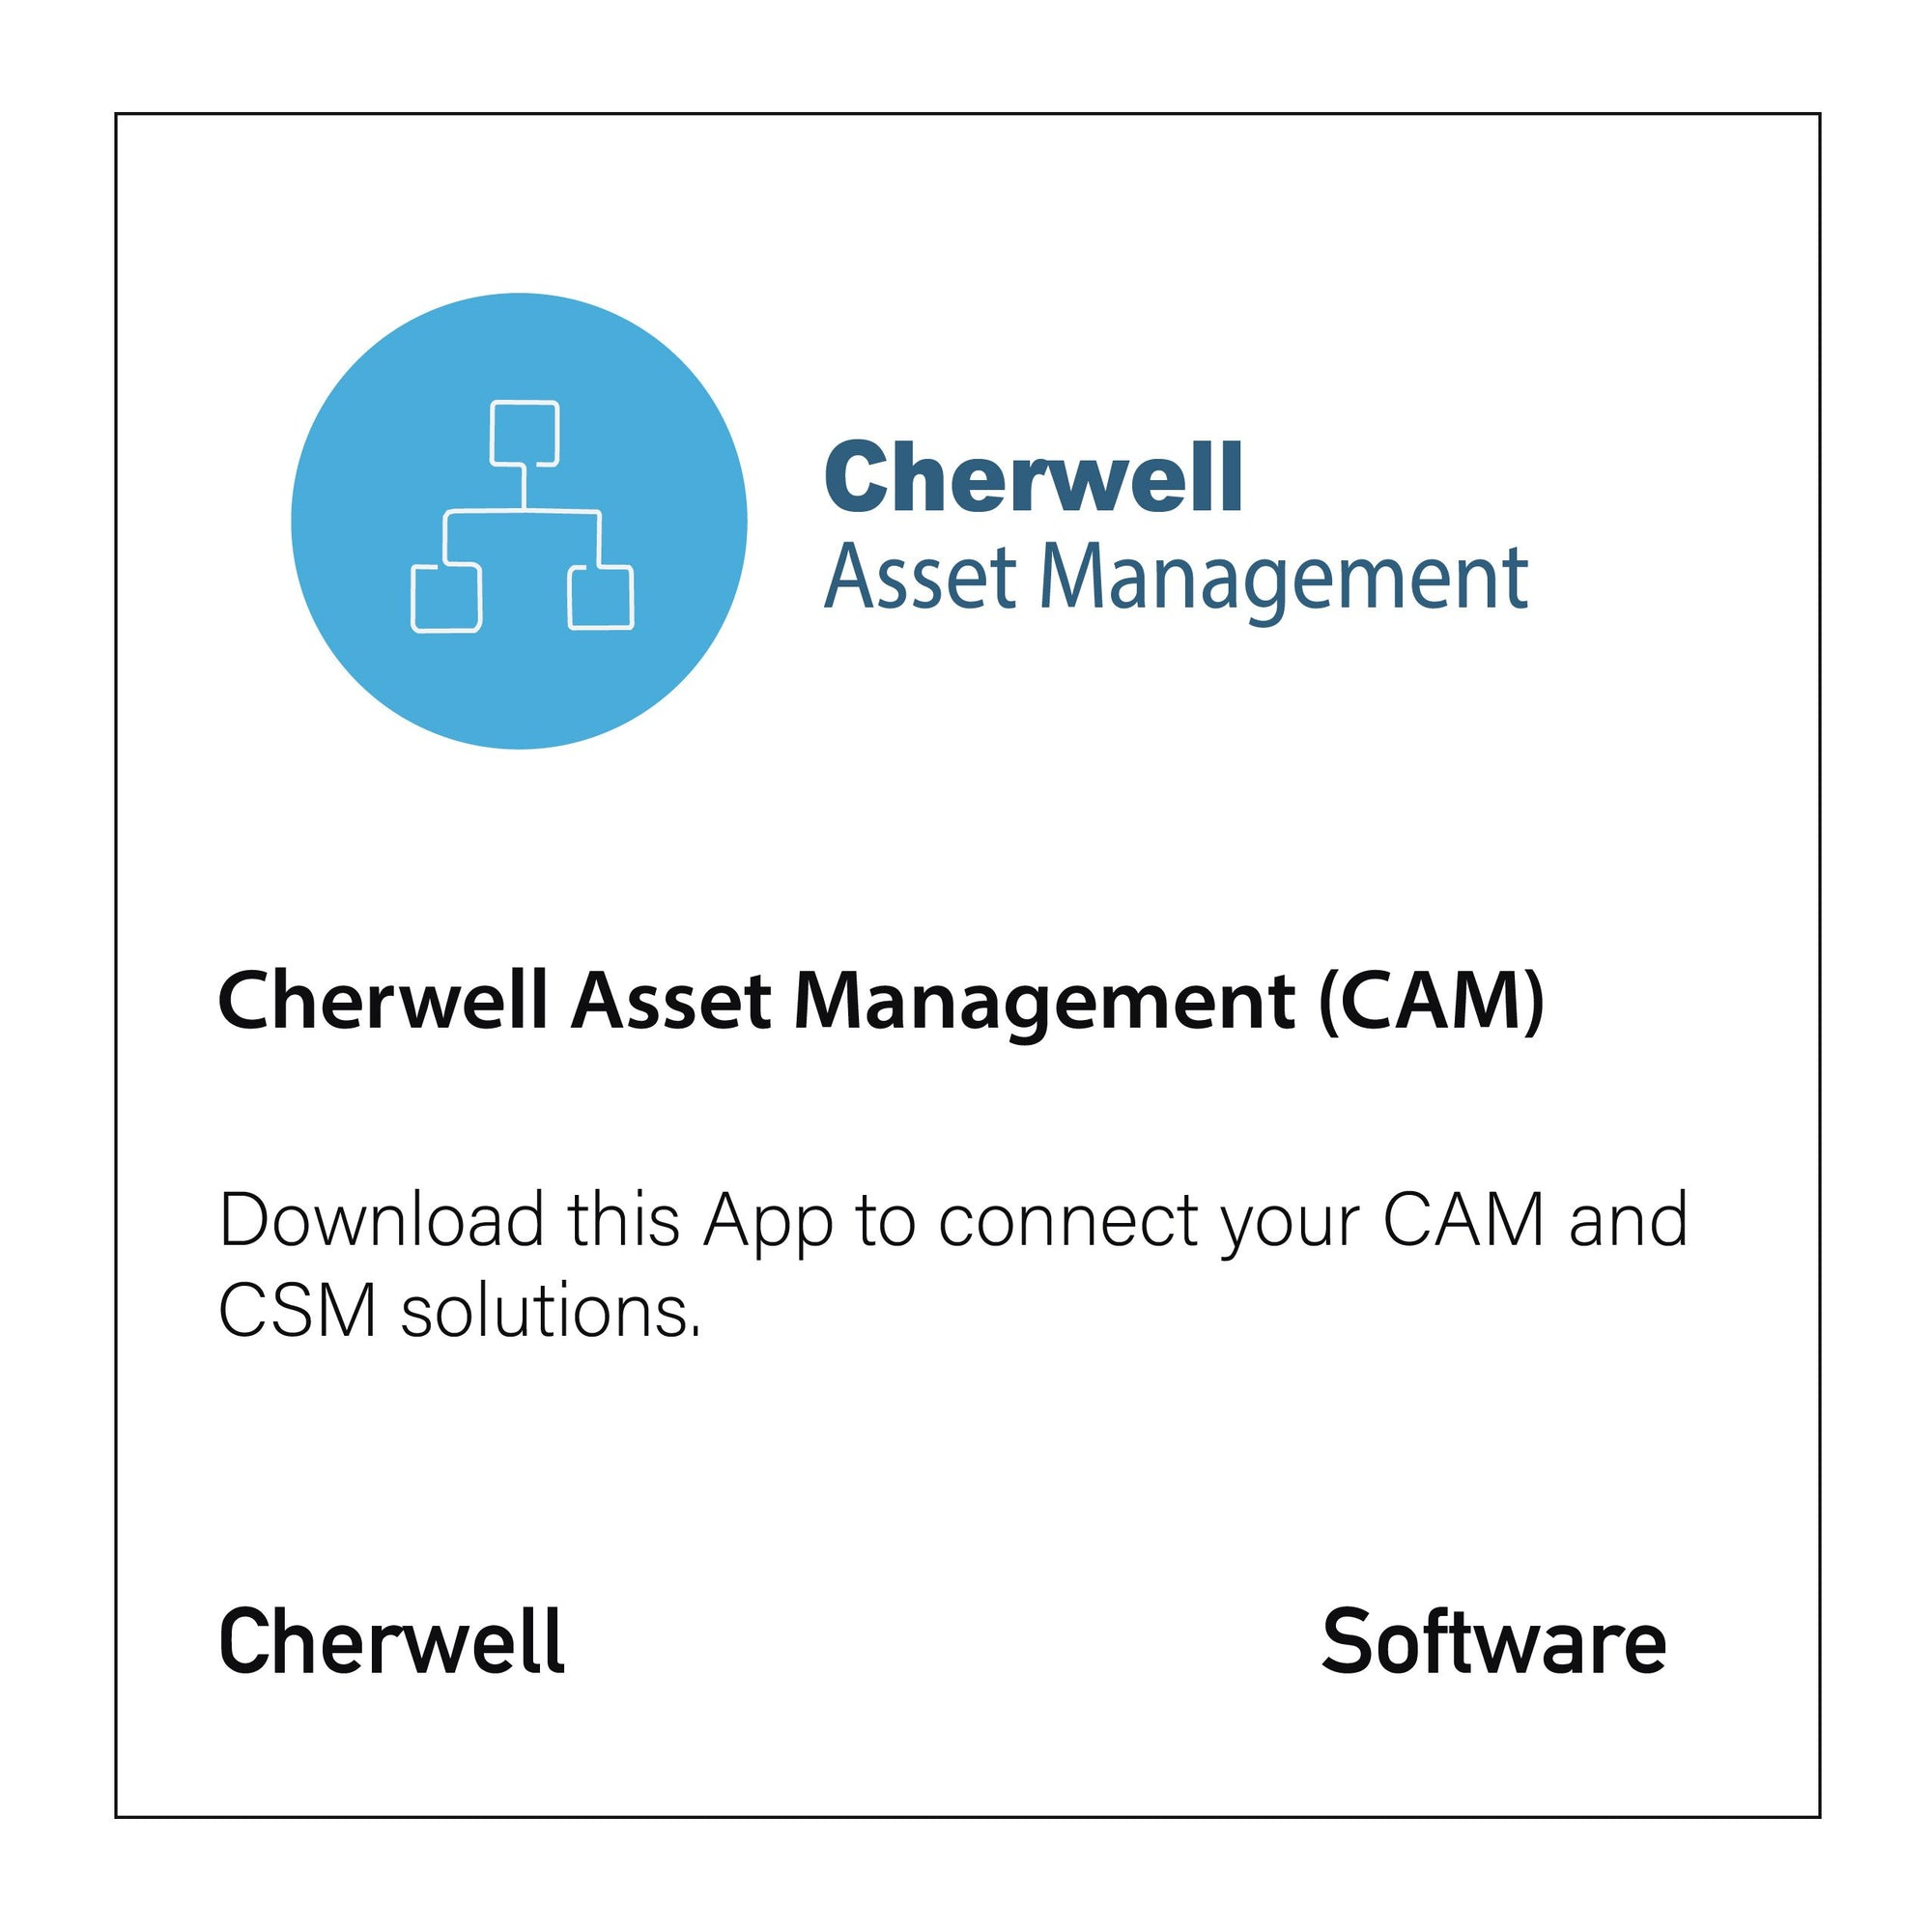 Cherwell Asset Management (CAM) - CloseReach Ltd